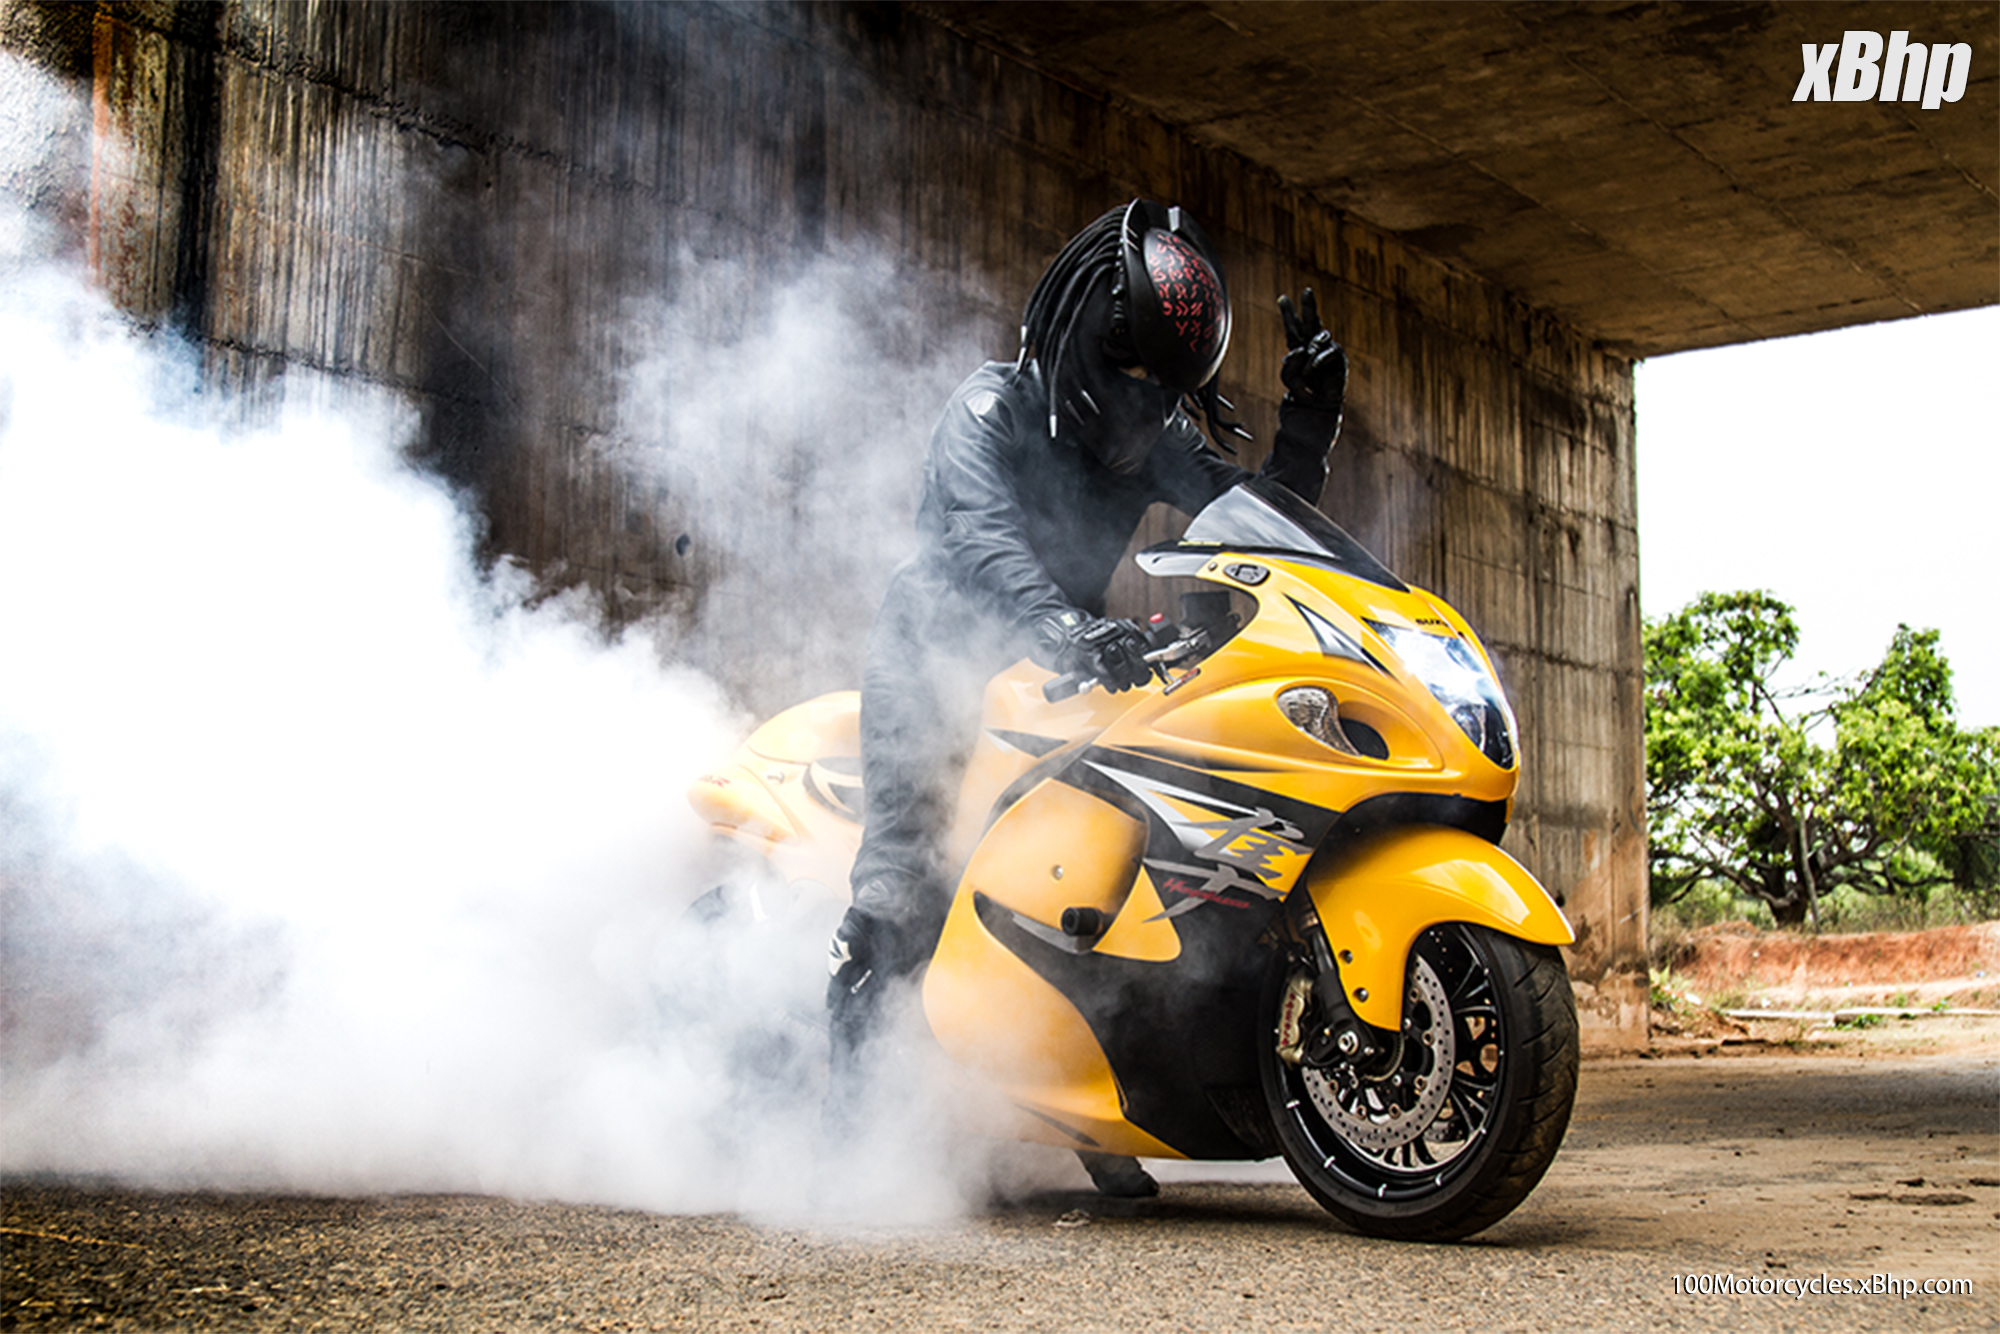 bike #92: transformers hayabusa - living machines! - 'olx and xbhp